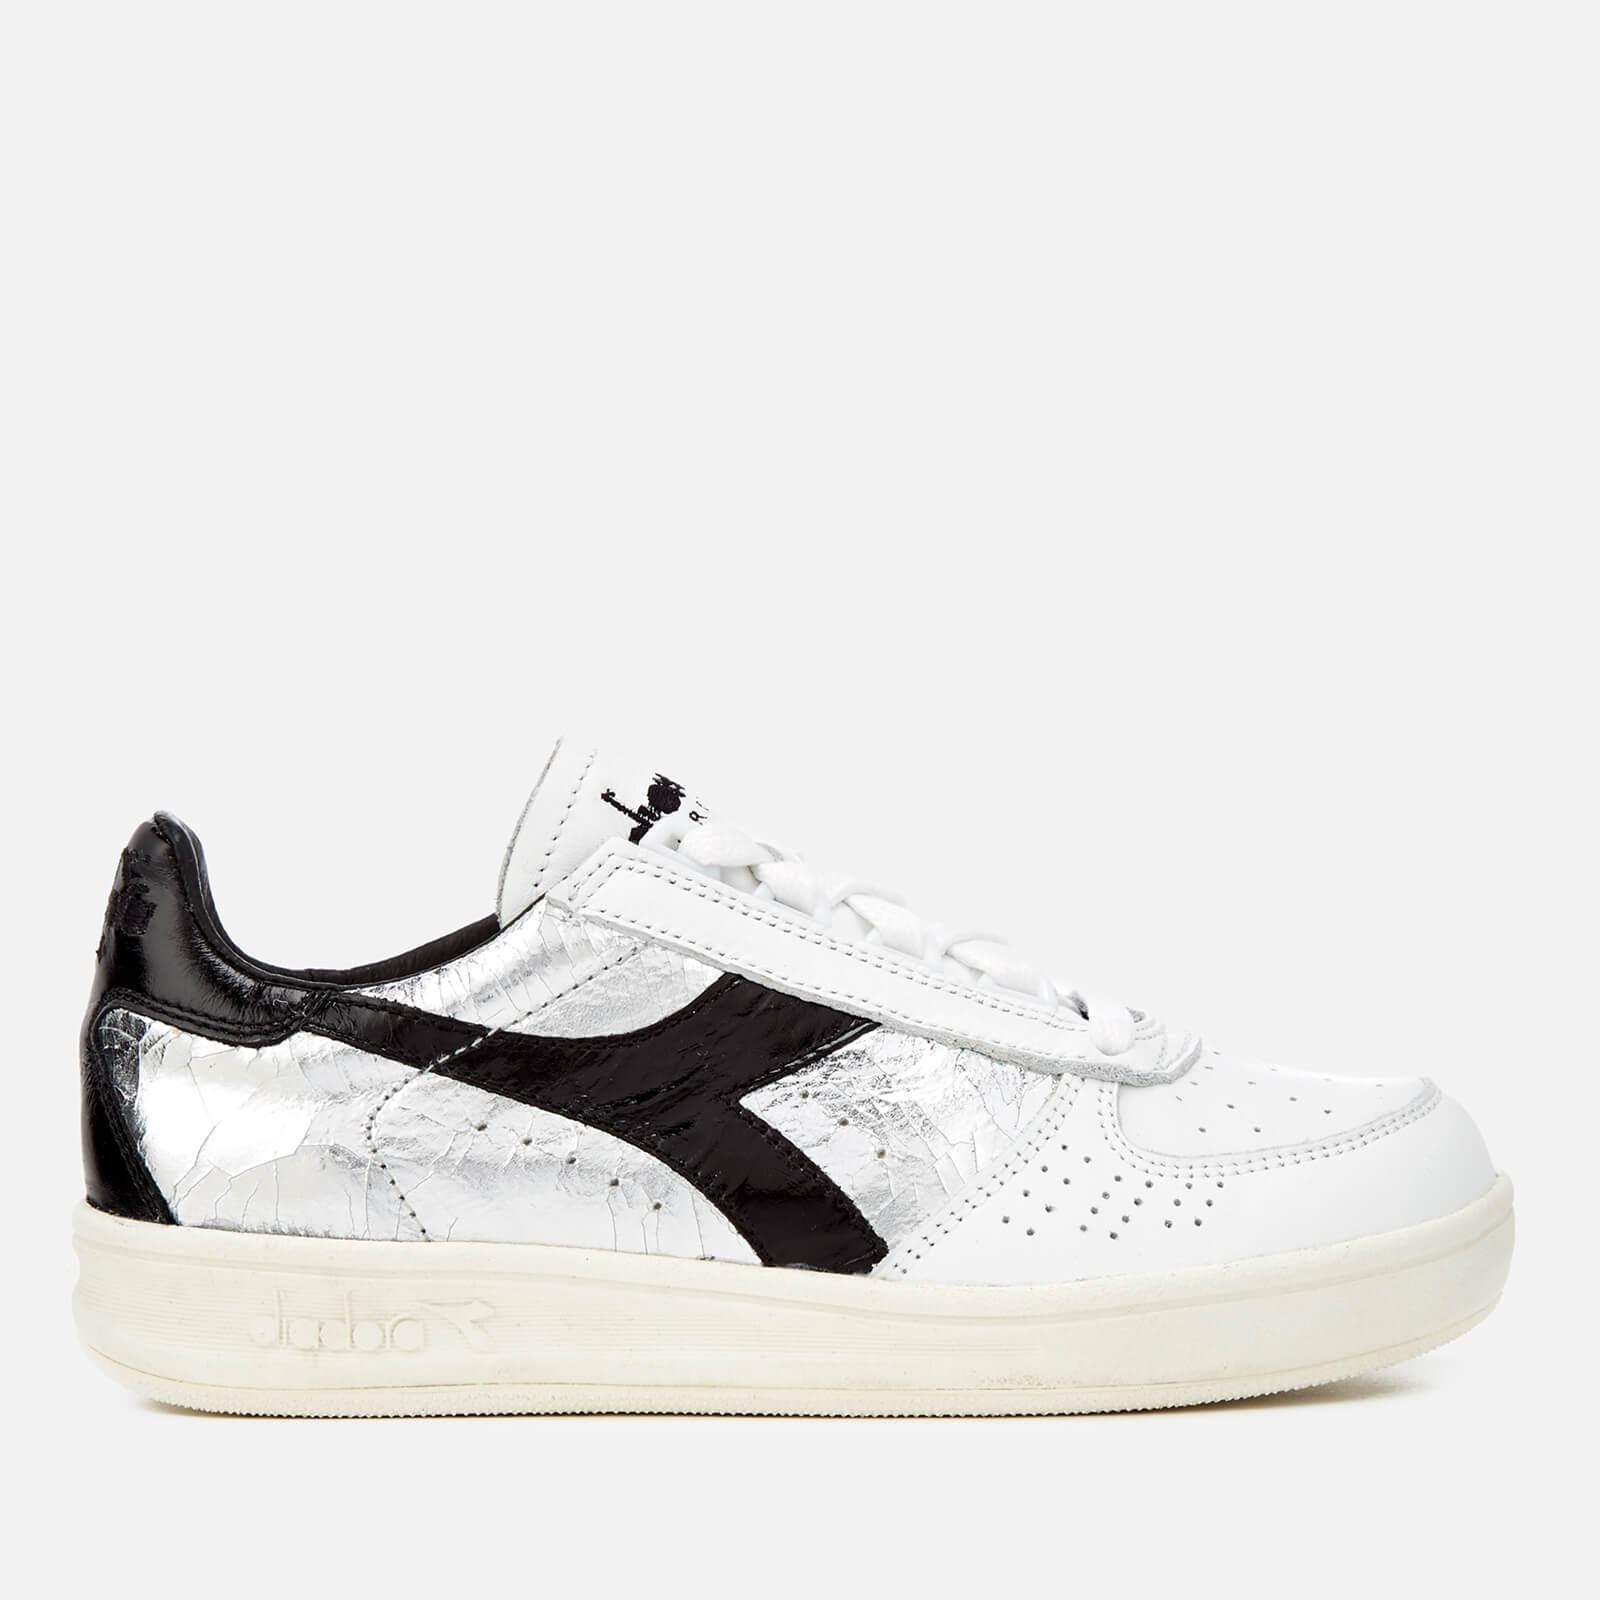 Diadora Heritage Women's B.Elite Silver Grain Leather Trainers Clearance Best Seller Up To Date Store Sale Online Sale Reliable rXUfxpC1t